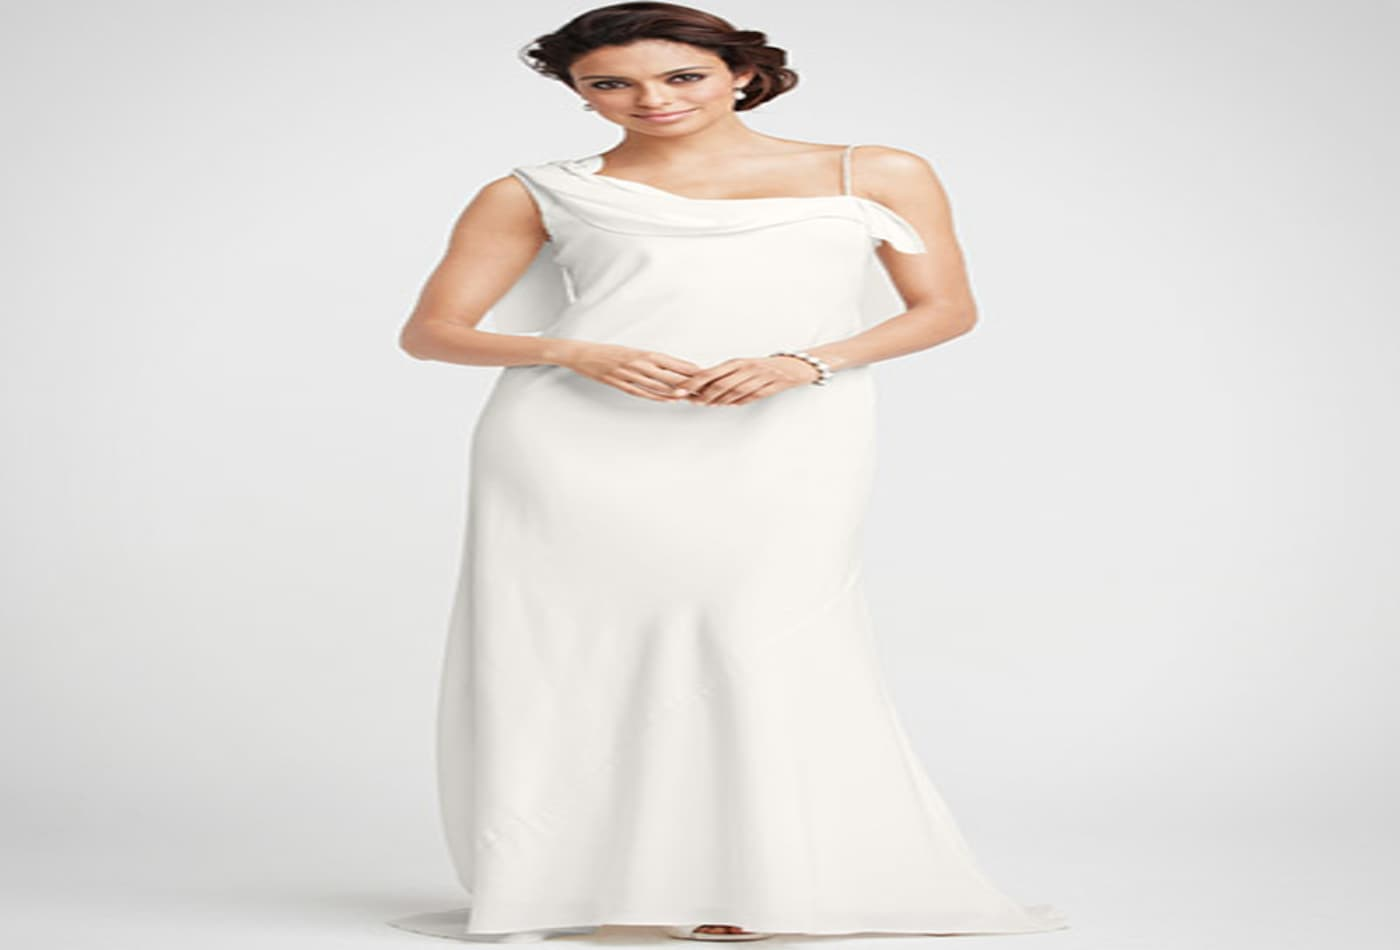 Ann Taylor Wedding Gowns: Wedding Dresses For Less